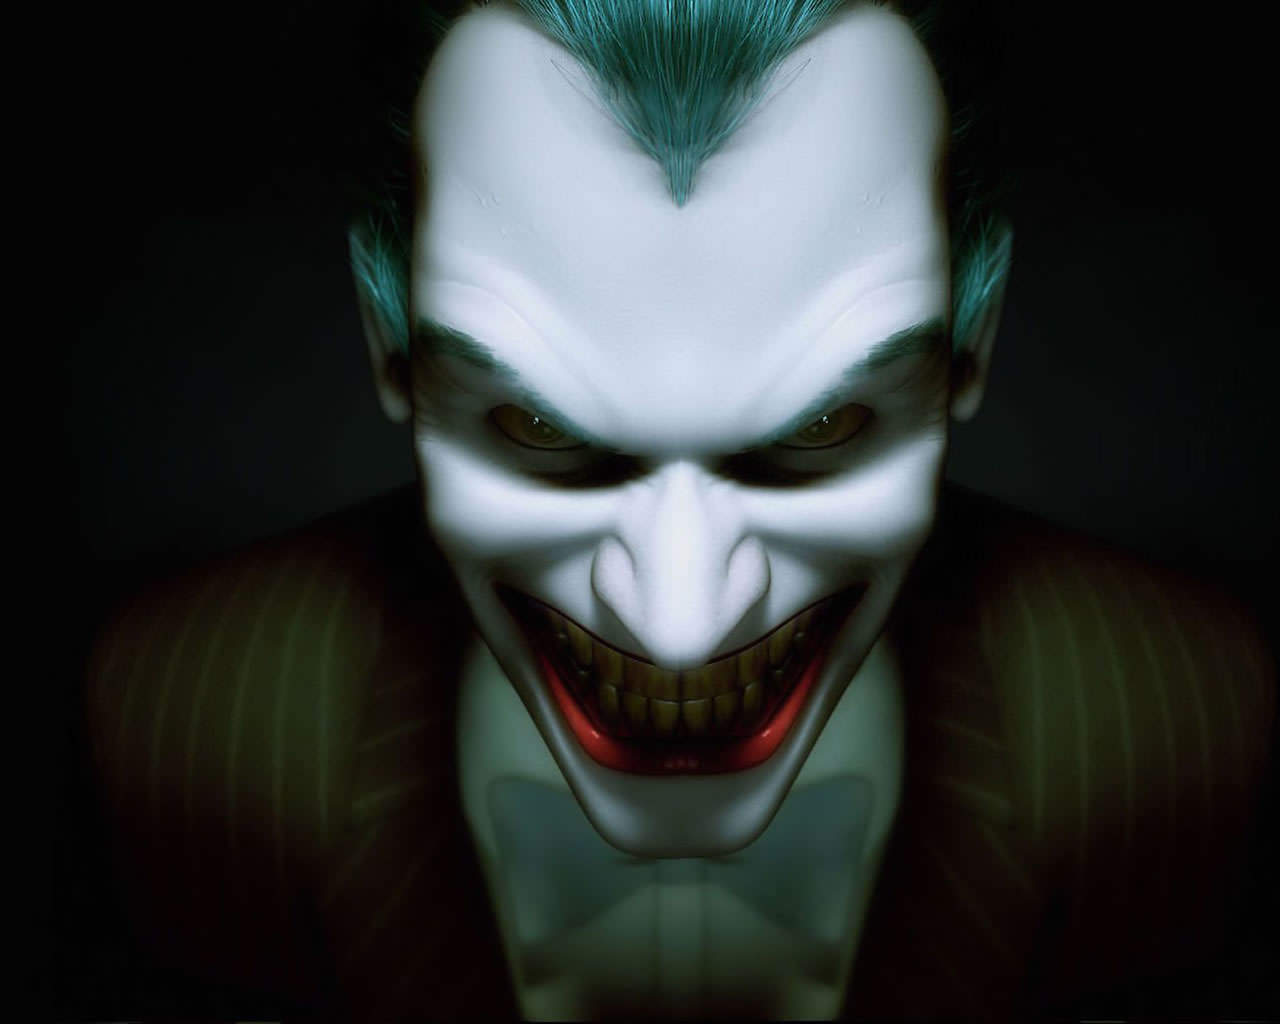 Joker Wallpaper 1280x1024 1280x1024